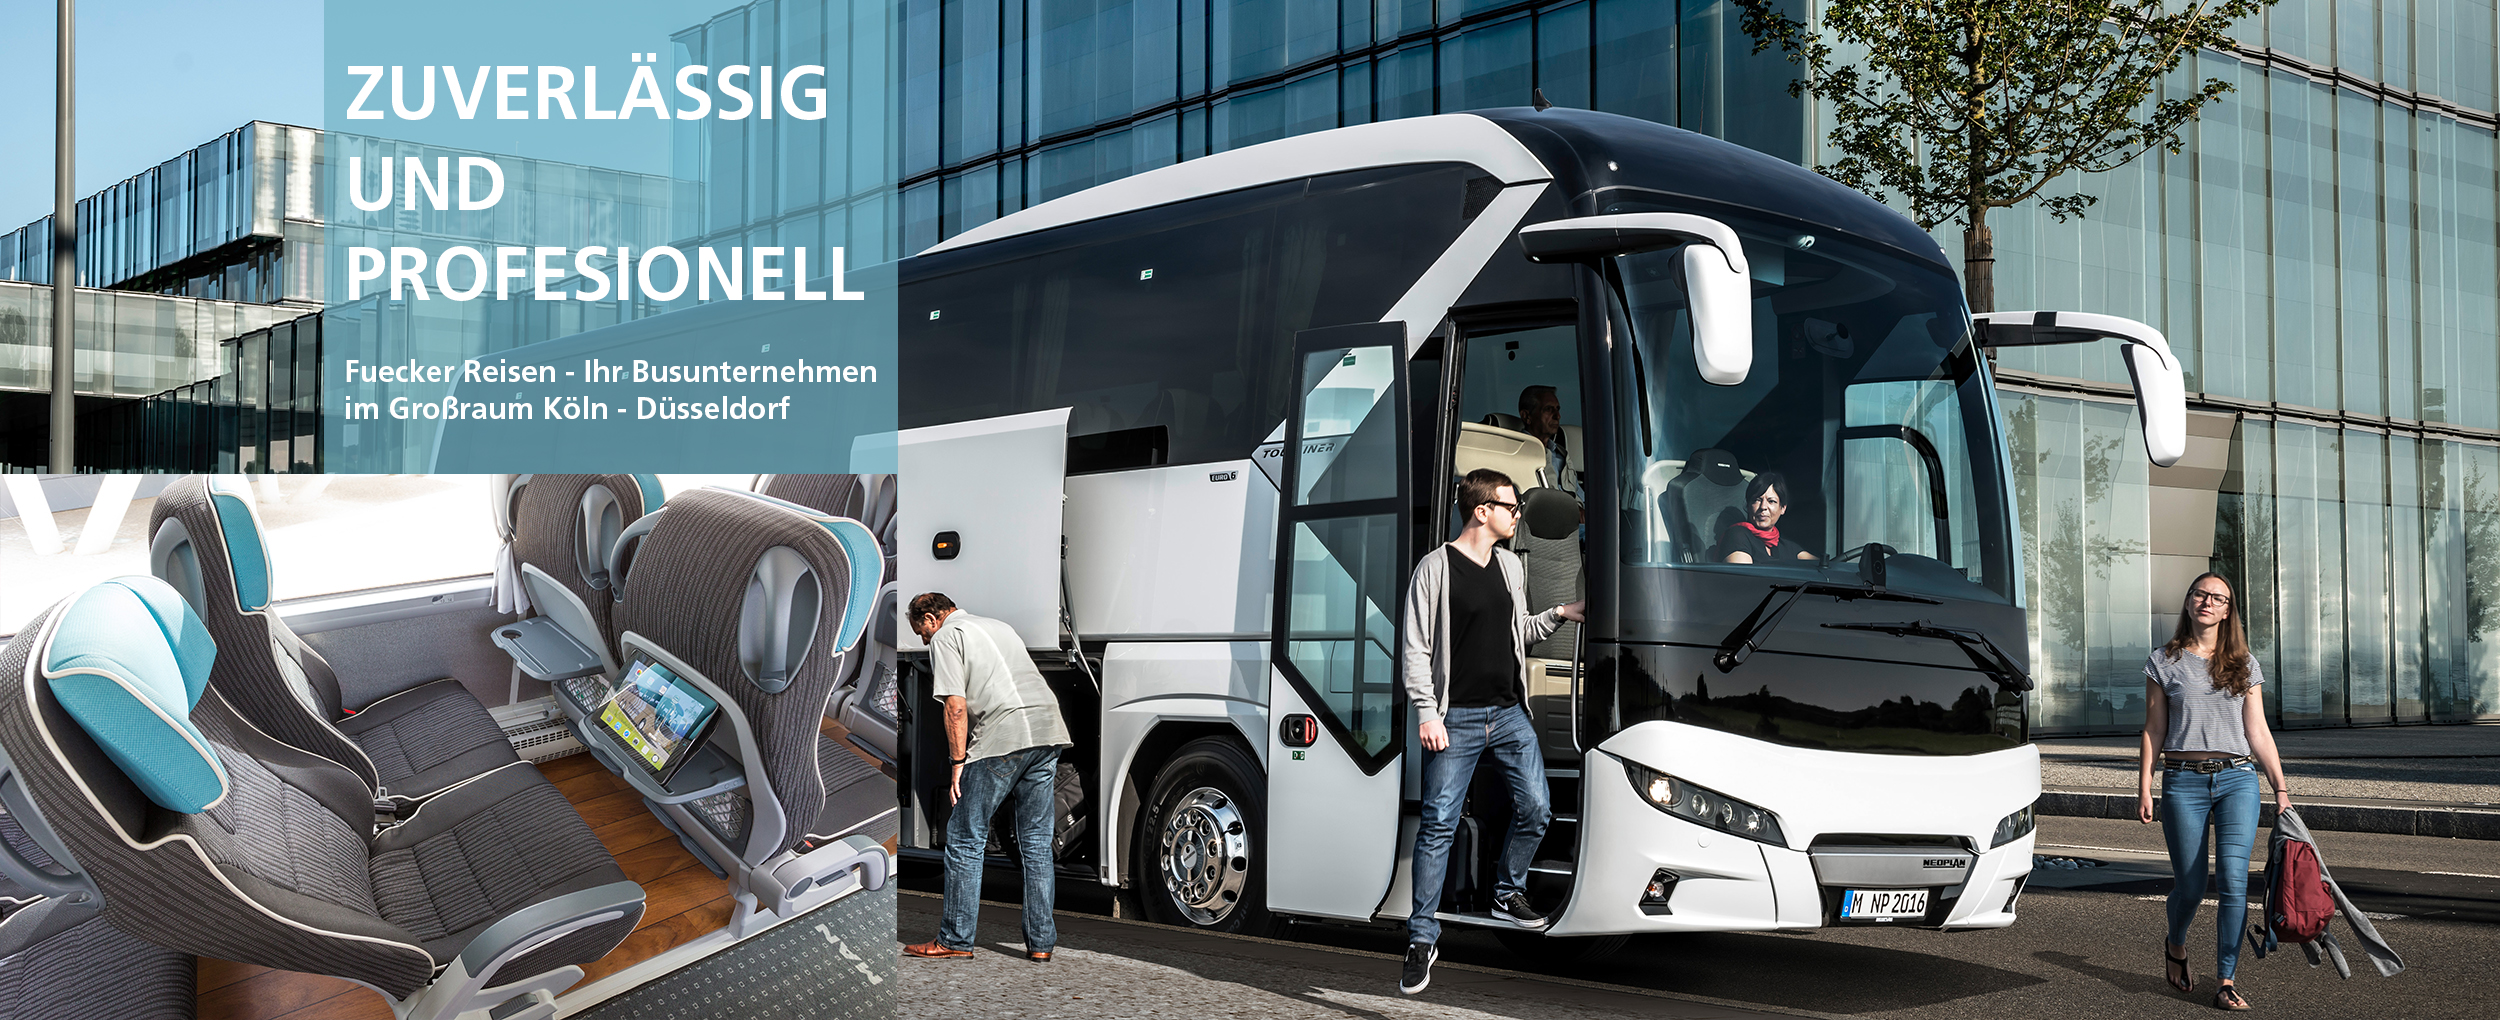 In visual terms the new NEOPLAN Tourliner is clearly a member of the NEOPLAN family. DE: Der neue NEOPLAN Tourliner reiht sich optisch klar  in die NEOPLAN-Familie ein. UK: In visual terms the new NEOPLAN Tourliner is clearly a member of the NEOPLAN family.